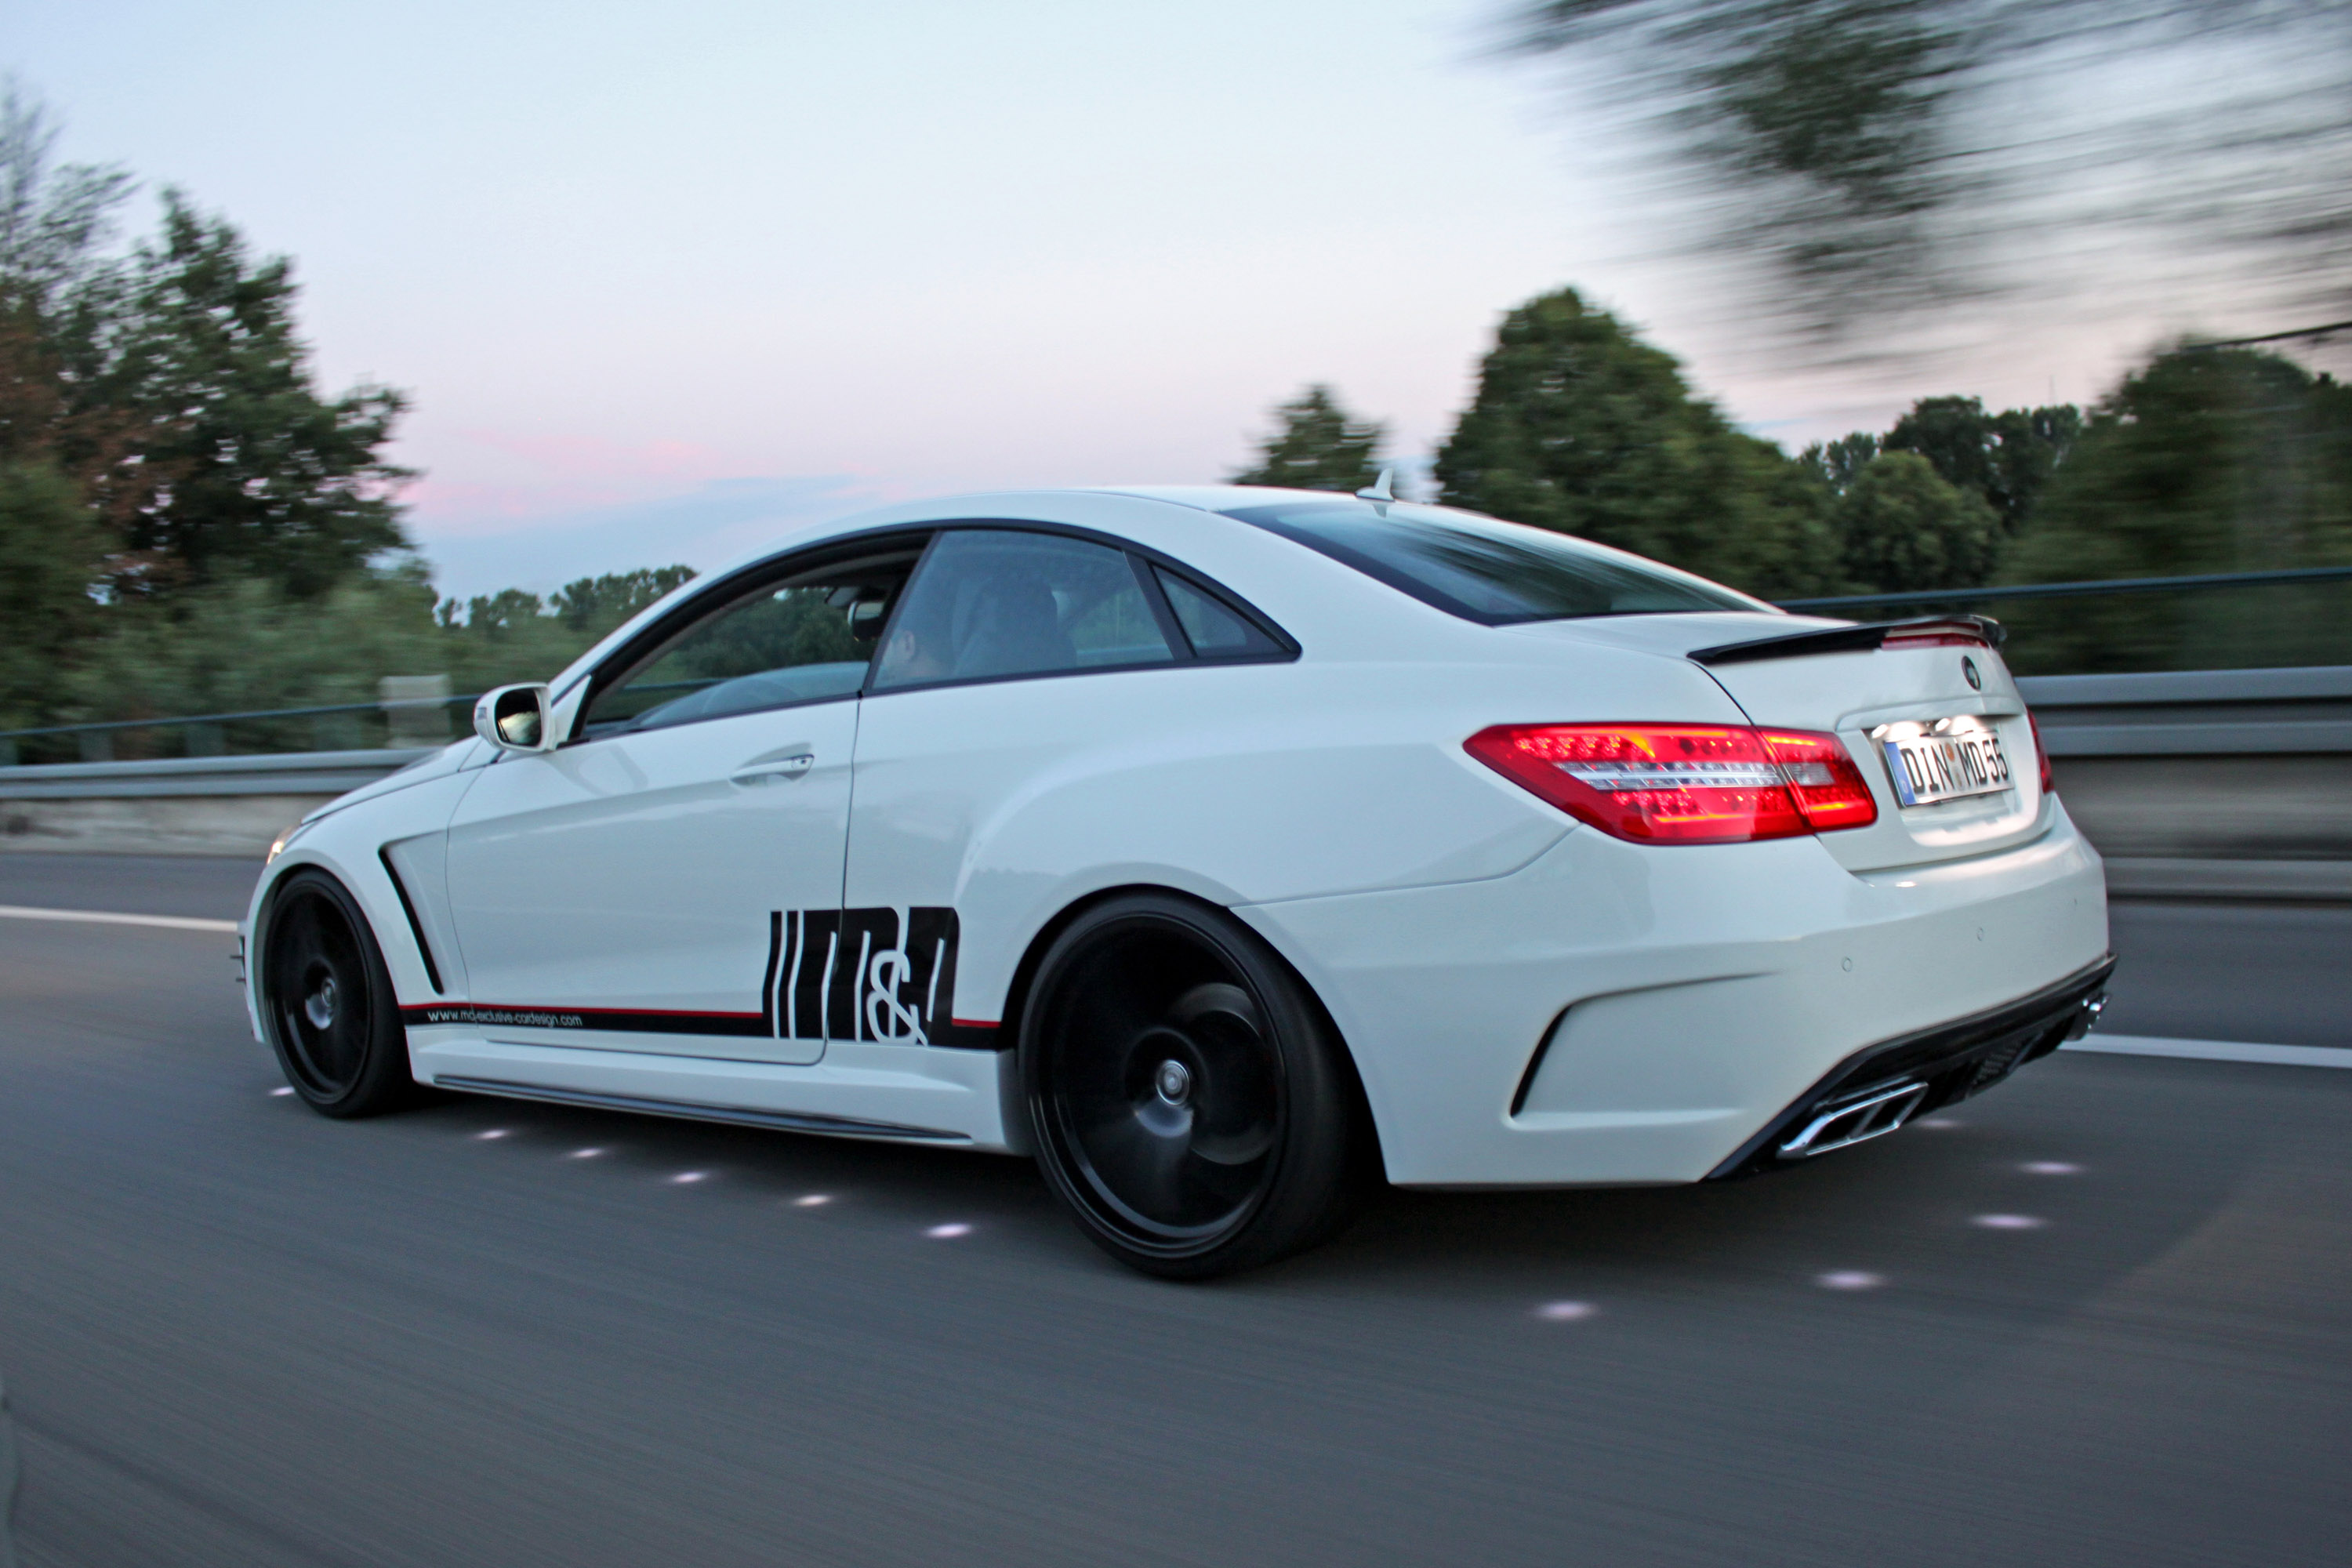 M d exclusive cardesign transforms mercedes benz e500 coupe for High performance parts for mercedes benz